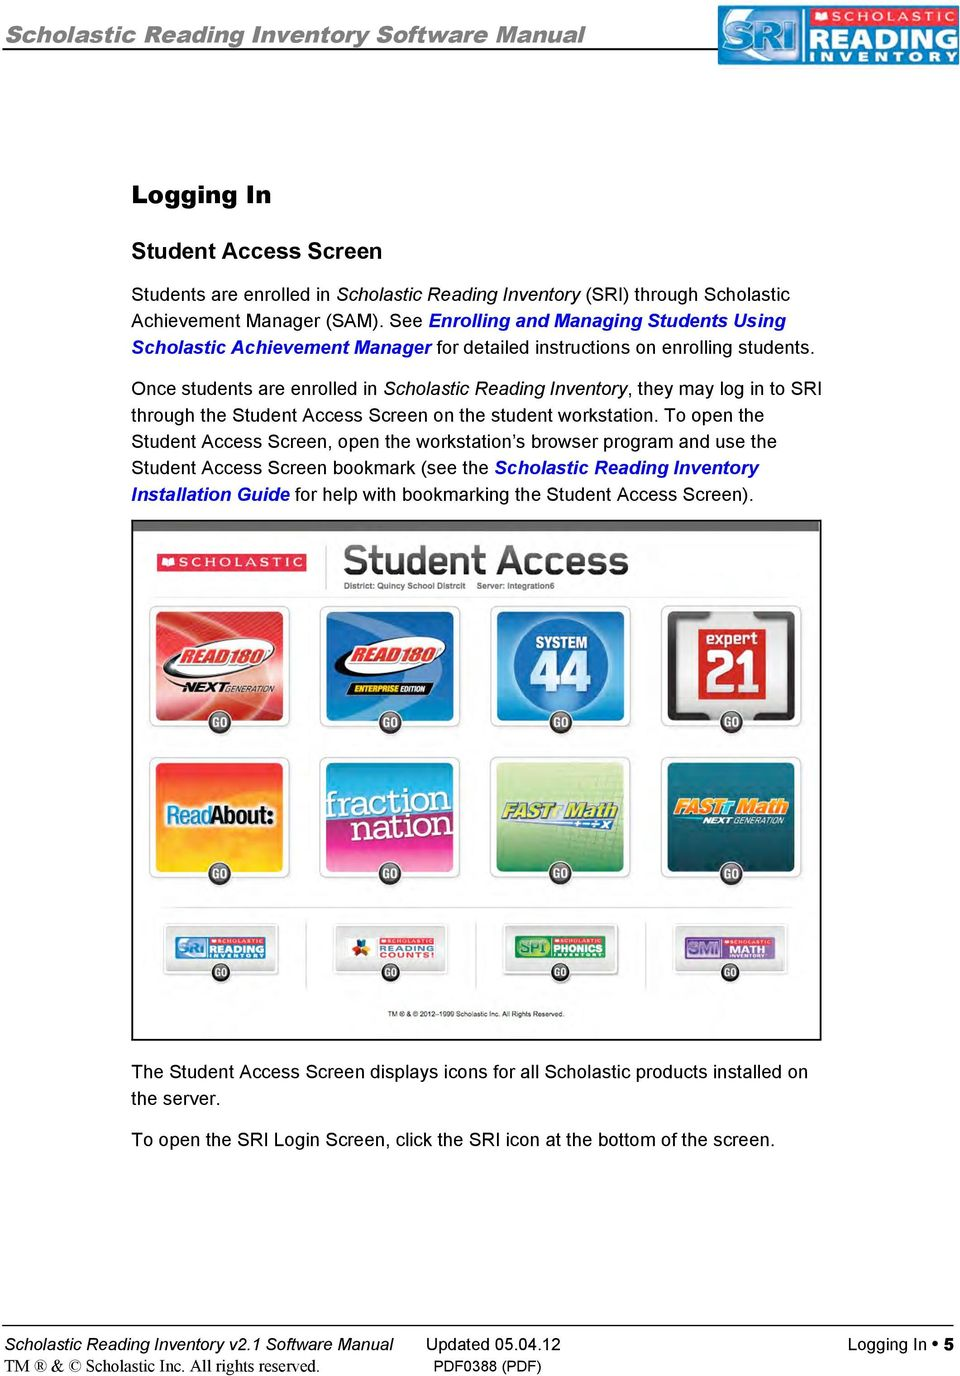 Once students are enrolled in Scholastic Reading Inventory, they may log in to SRI through the Student Access Screen on the student workstation.